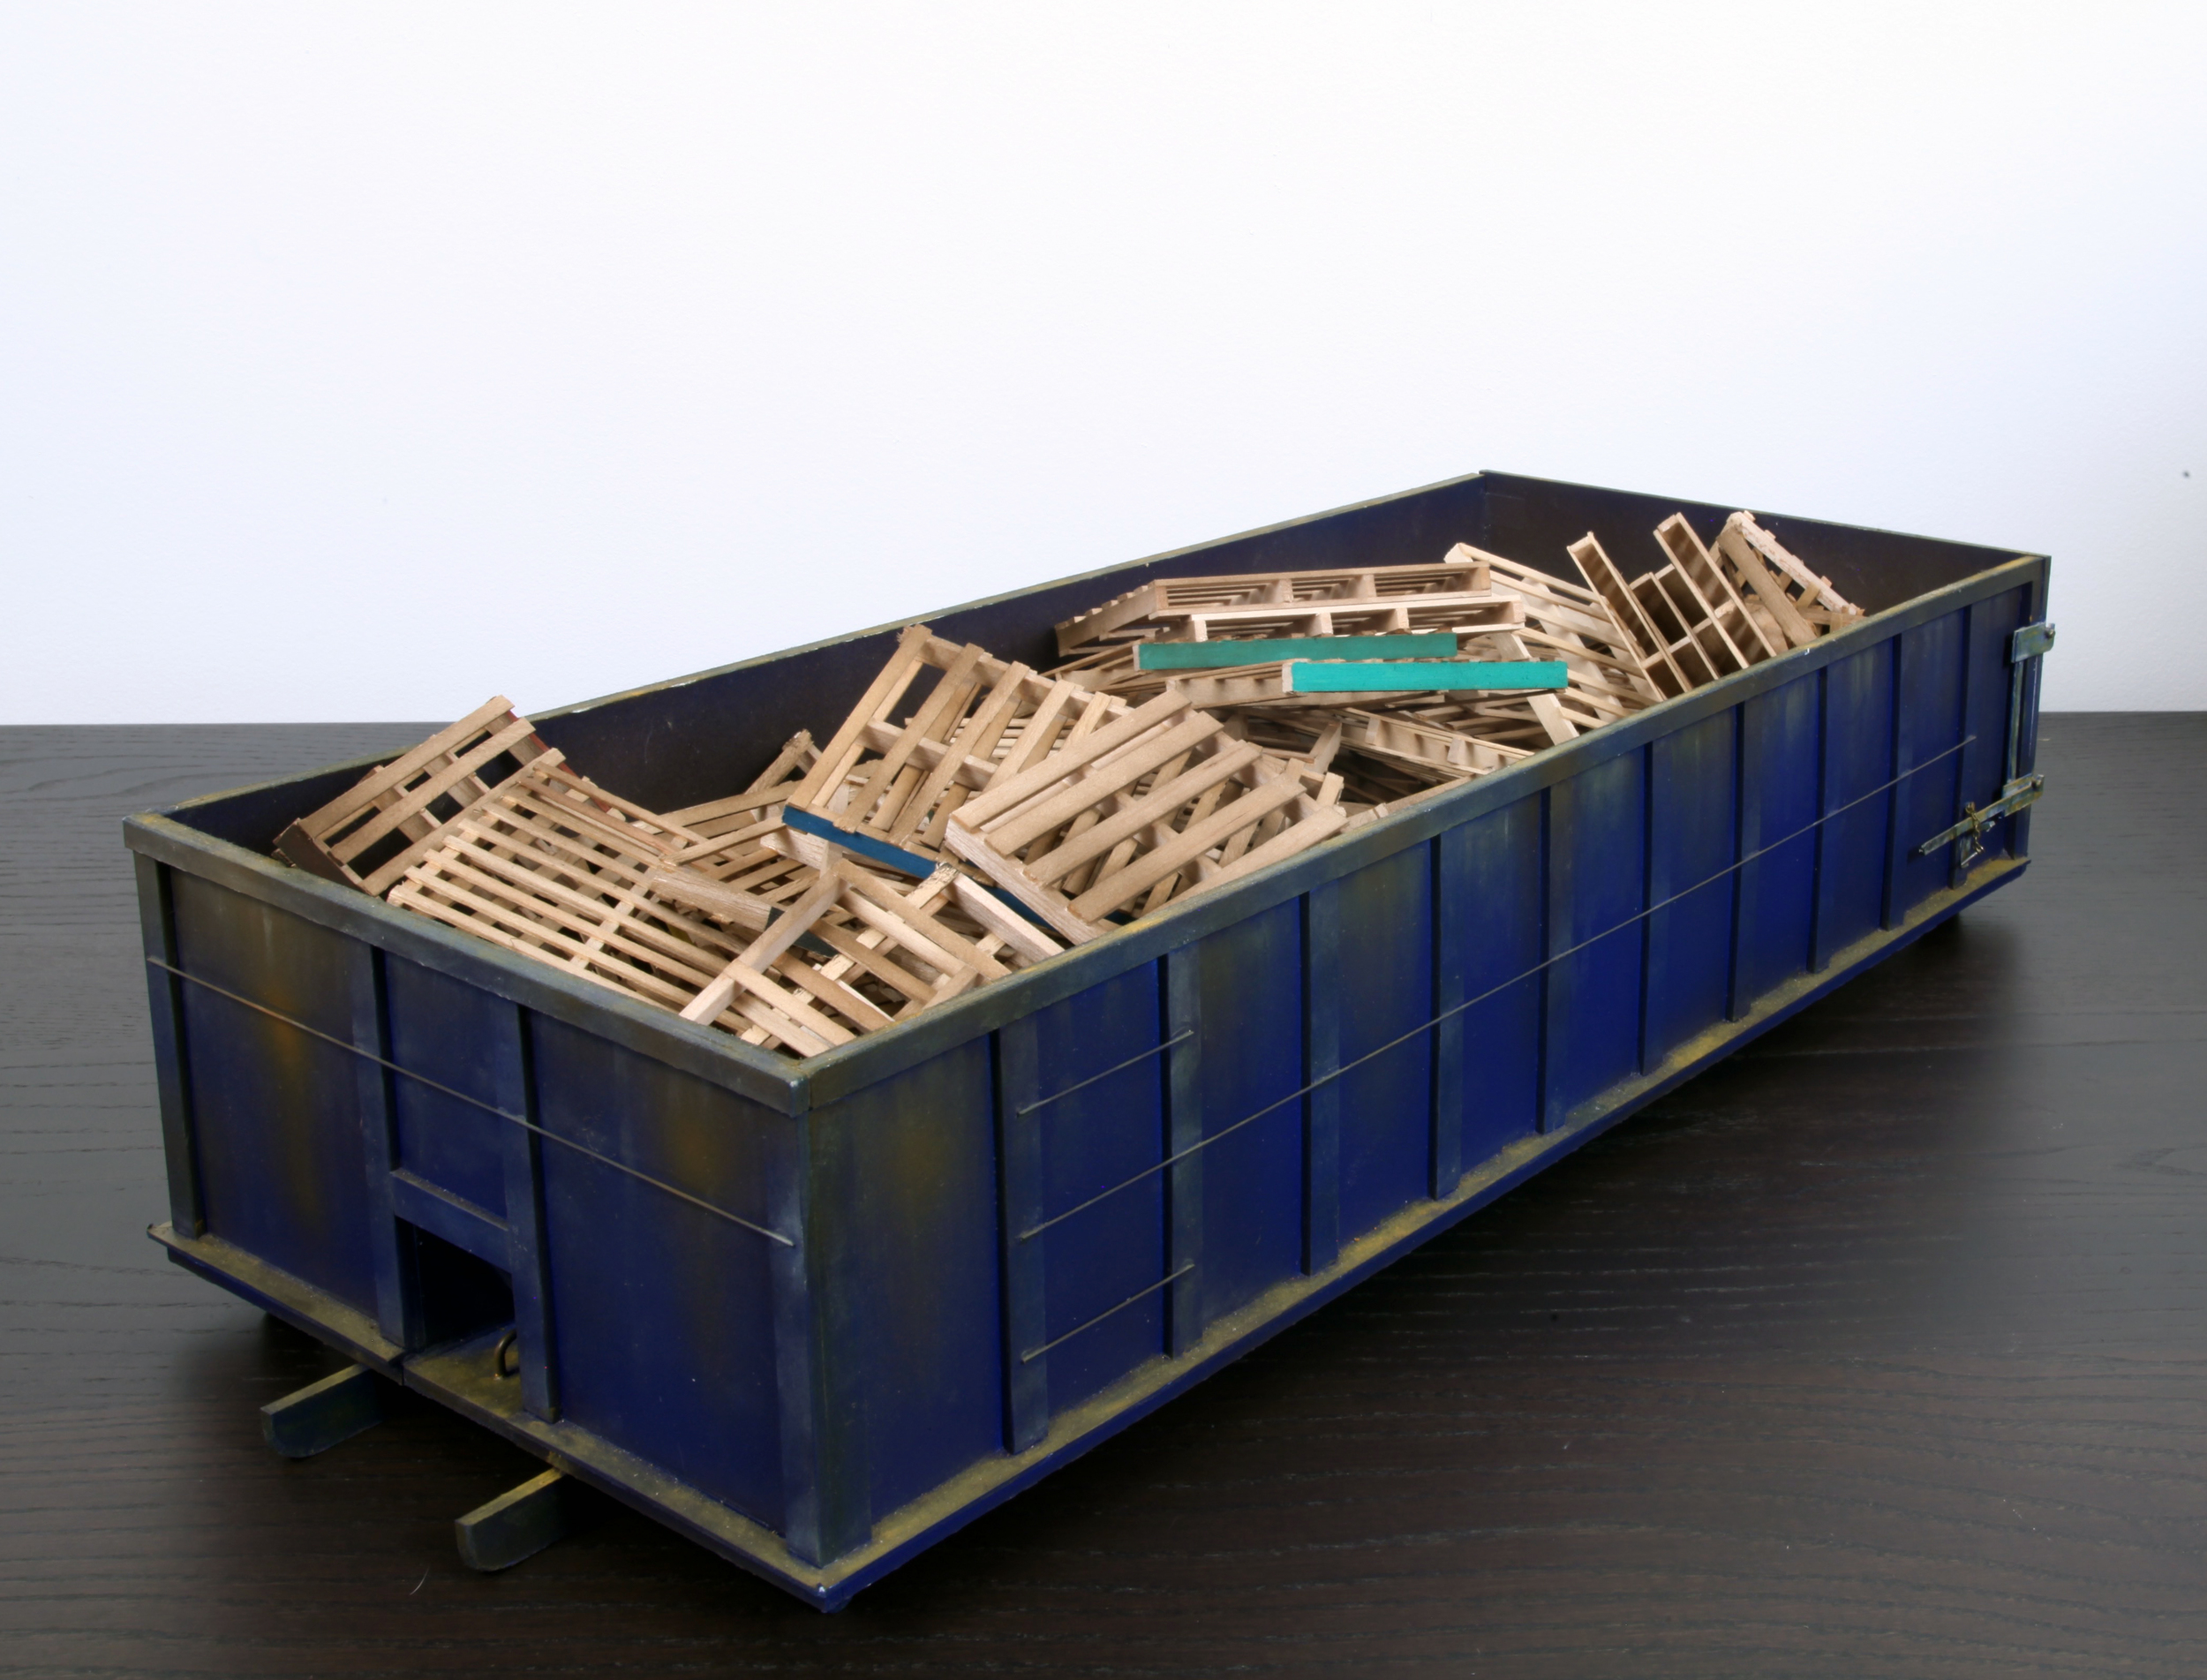 Blue 30 yard Dumpster with 55 pallets